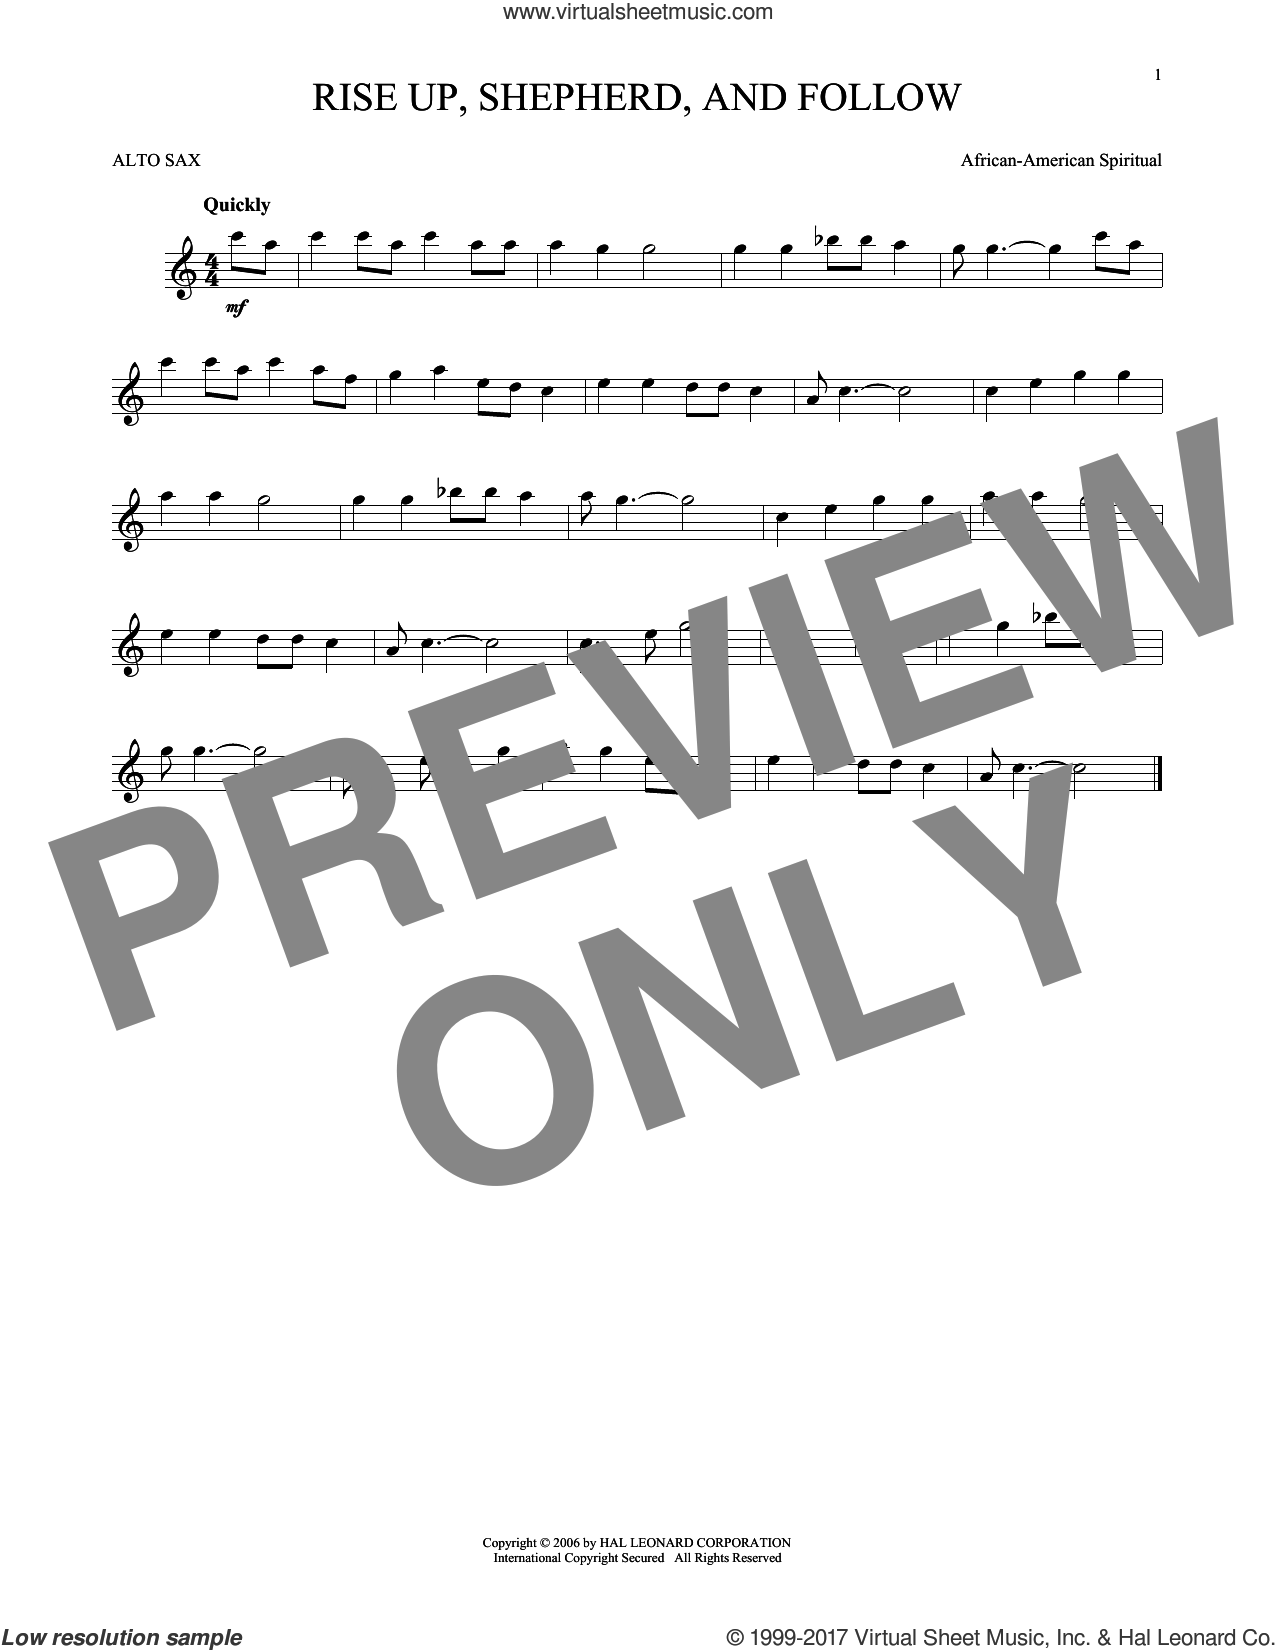 Rise Up, Shepherd, And Follow sheet music for alto saxophone solo, intermediate skill level